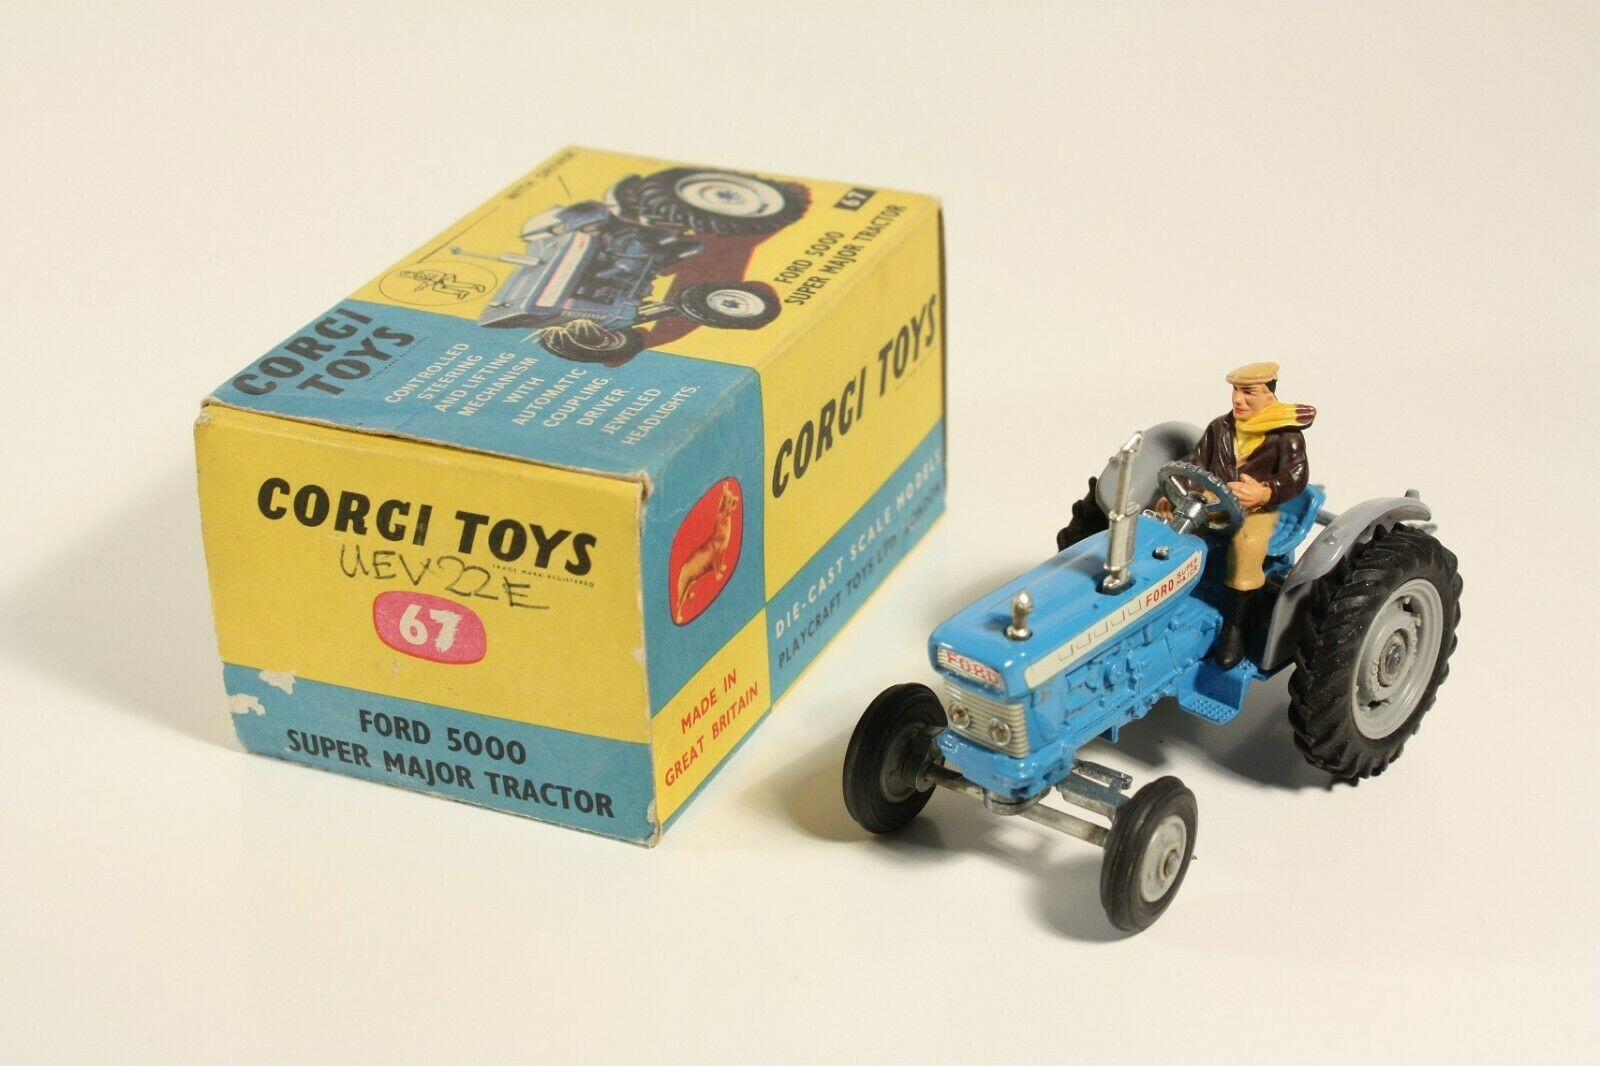 Corgi Toys 67, Ford 5000 Super Major Tractor, Mint in Box                 ab2299